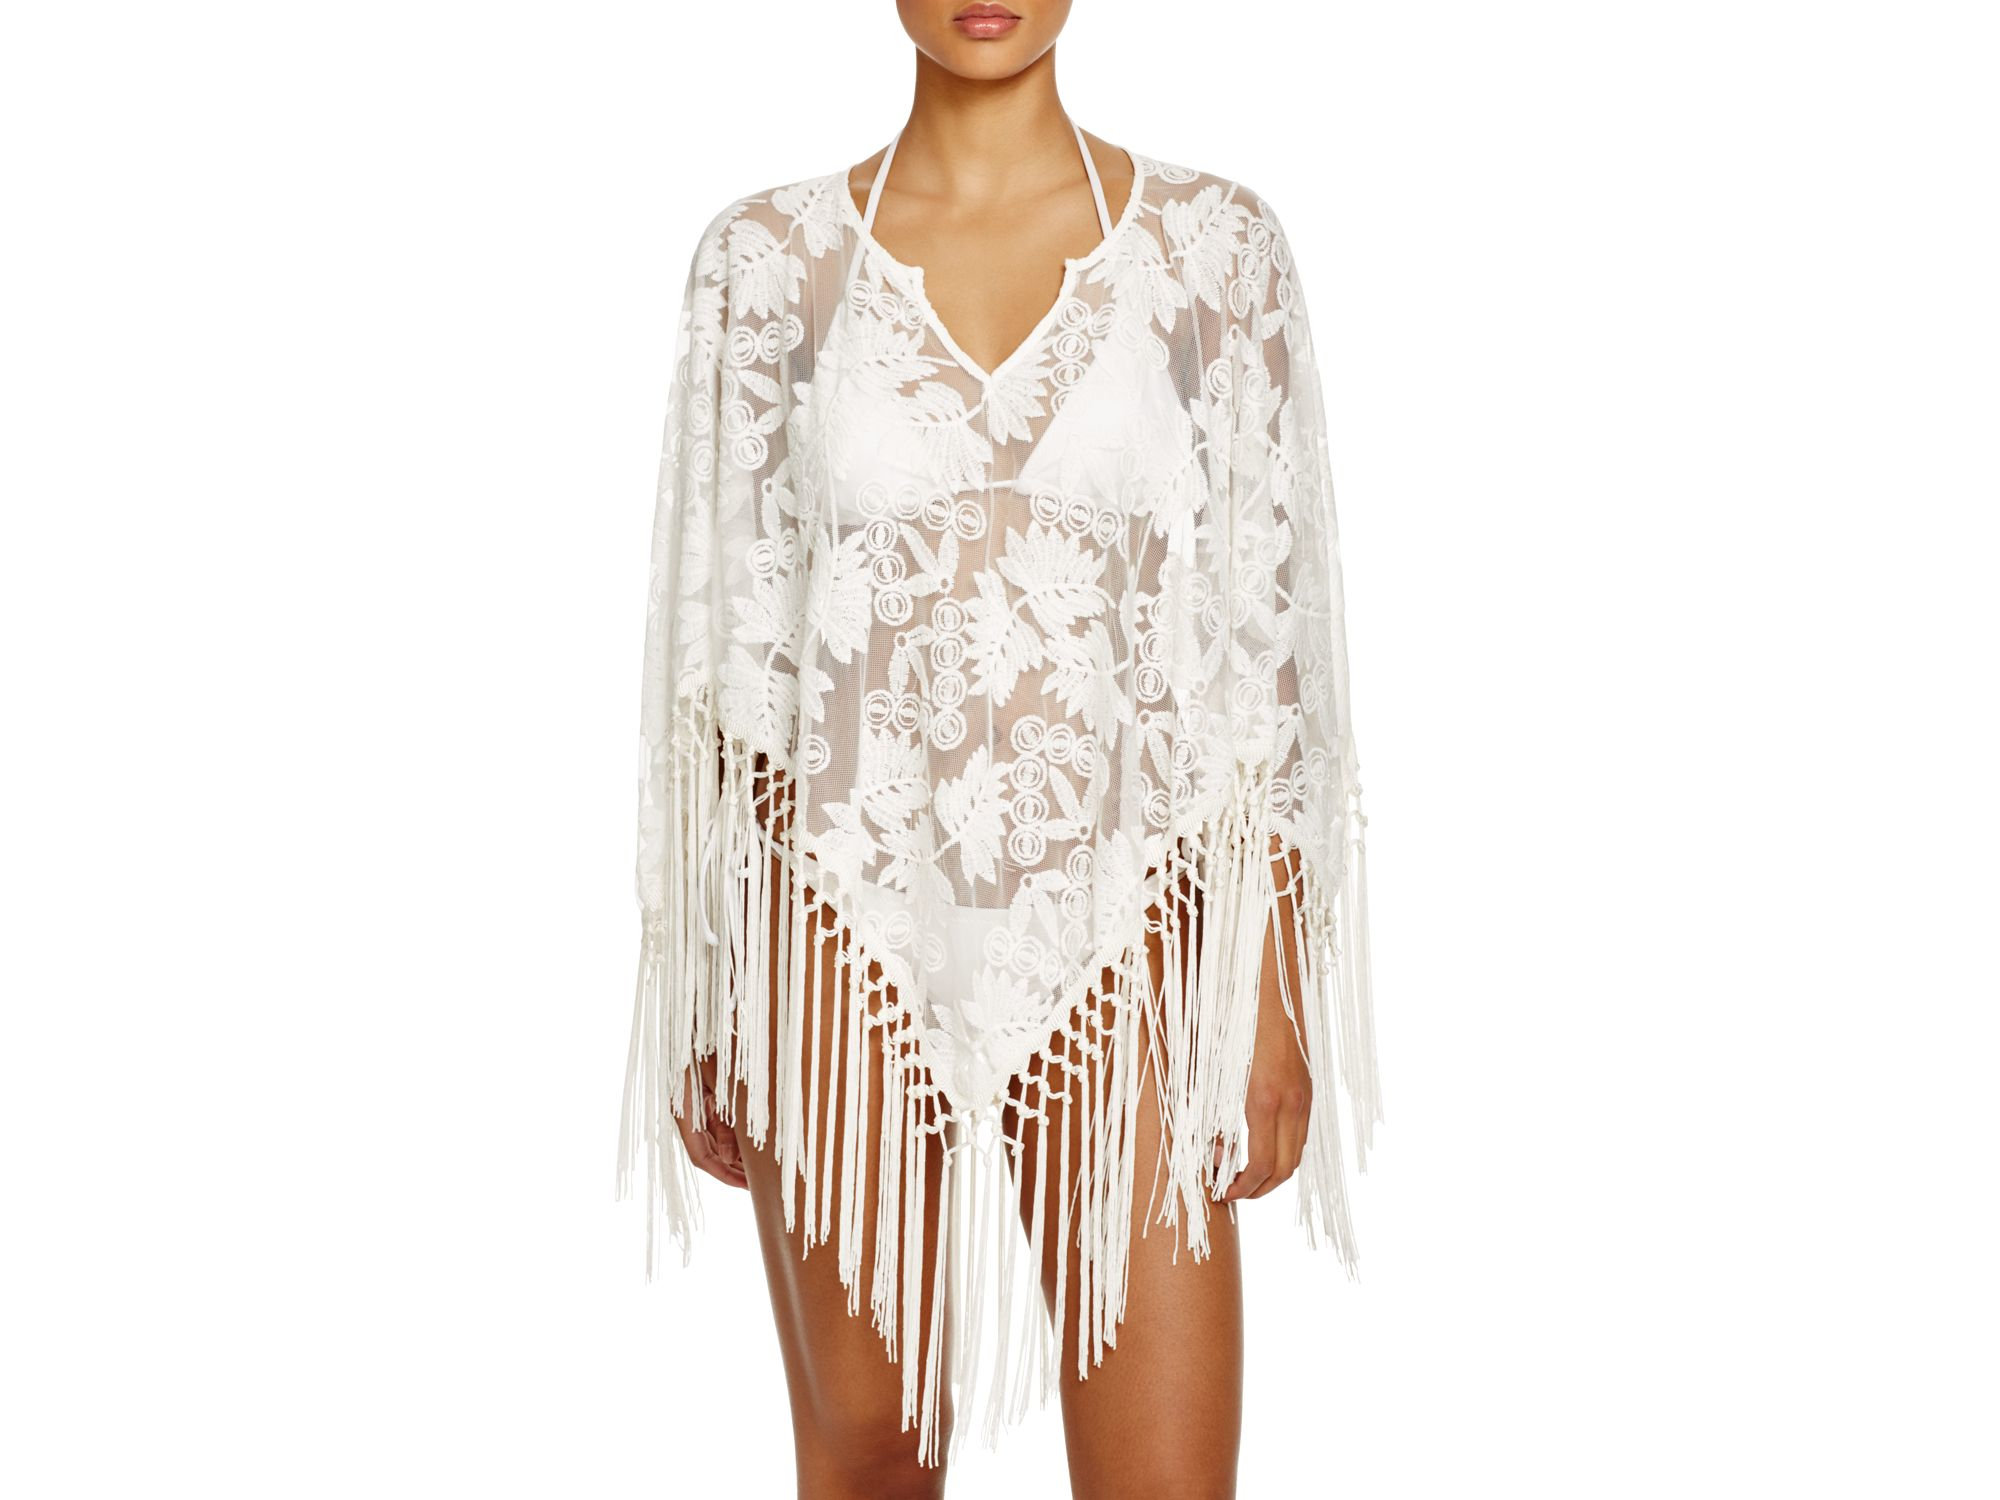 a43b3192c3bd6 Lyst - Surf Gypsy Fringe Lily Poncho Swim Cover Up in White